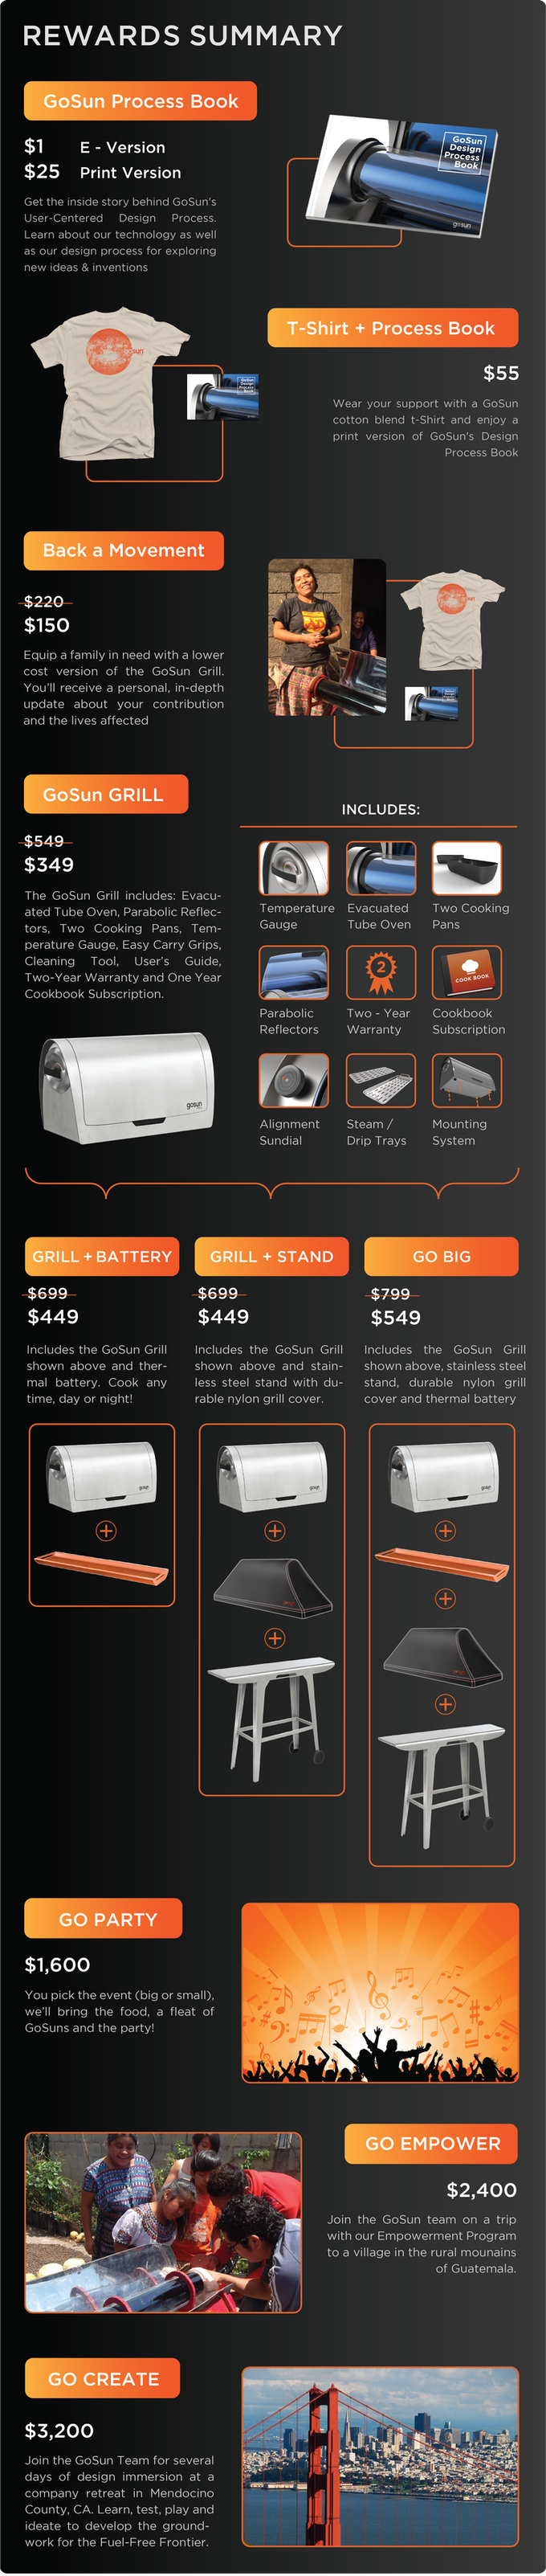 Gosun Grill A Breakthrough Solar Oven That Cooks At Night By Fusion 700 Marine Stereo Wiring Diagram Stretch Goal 3